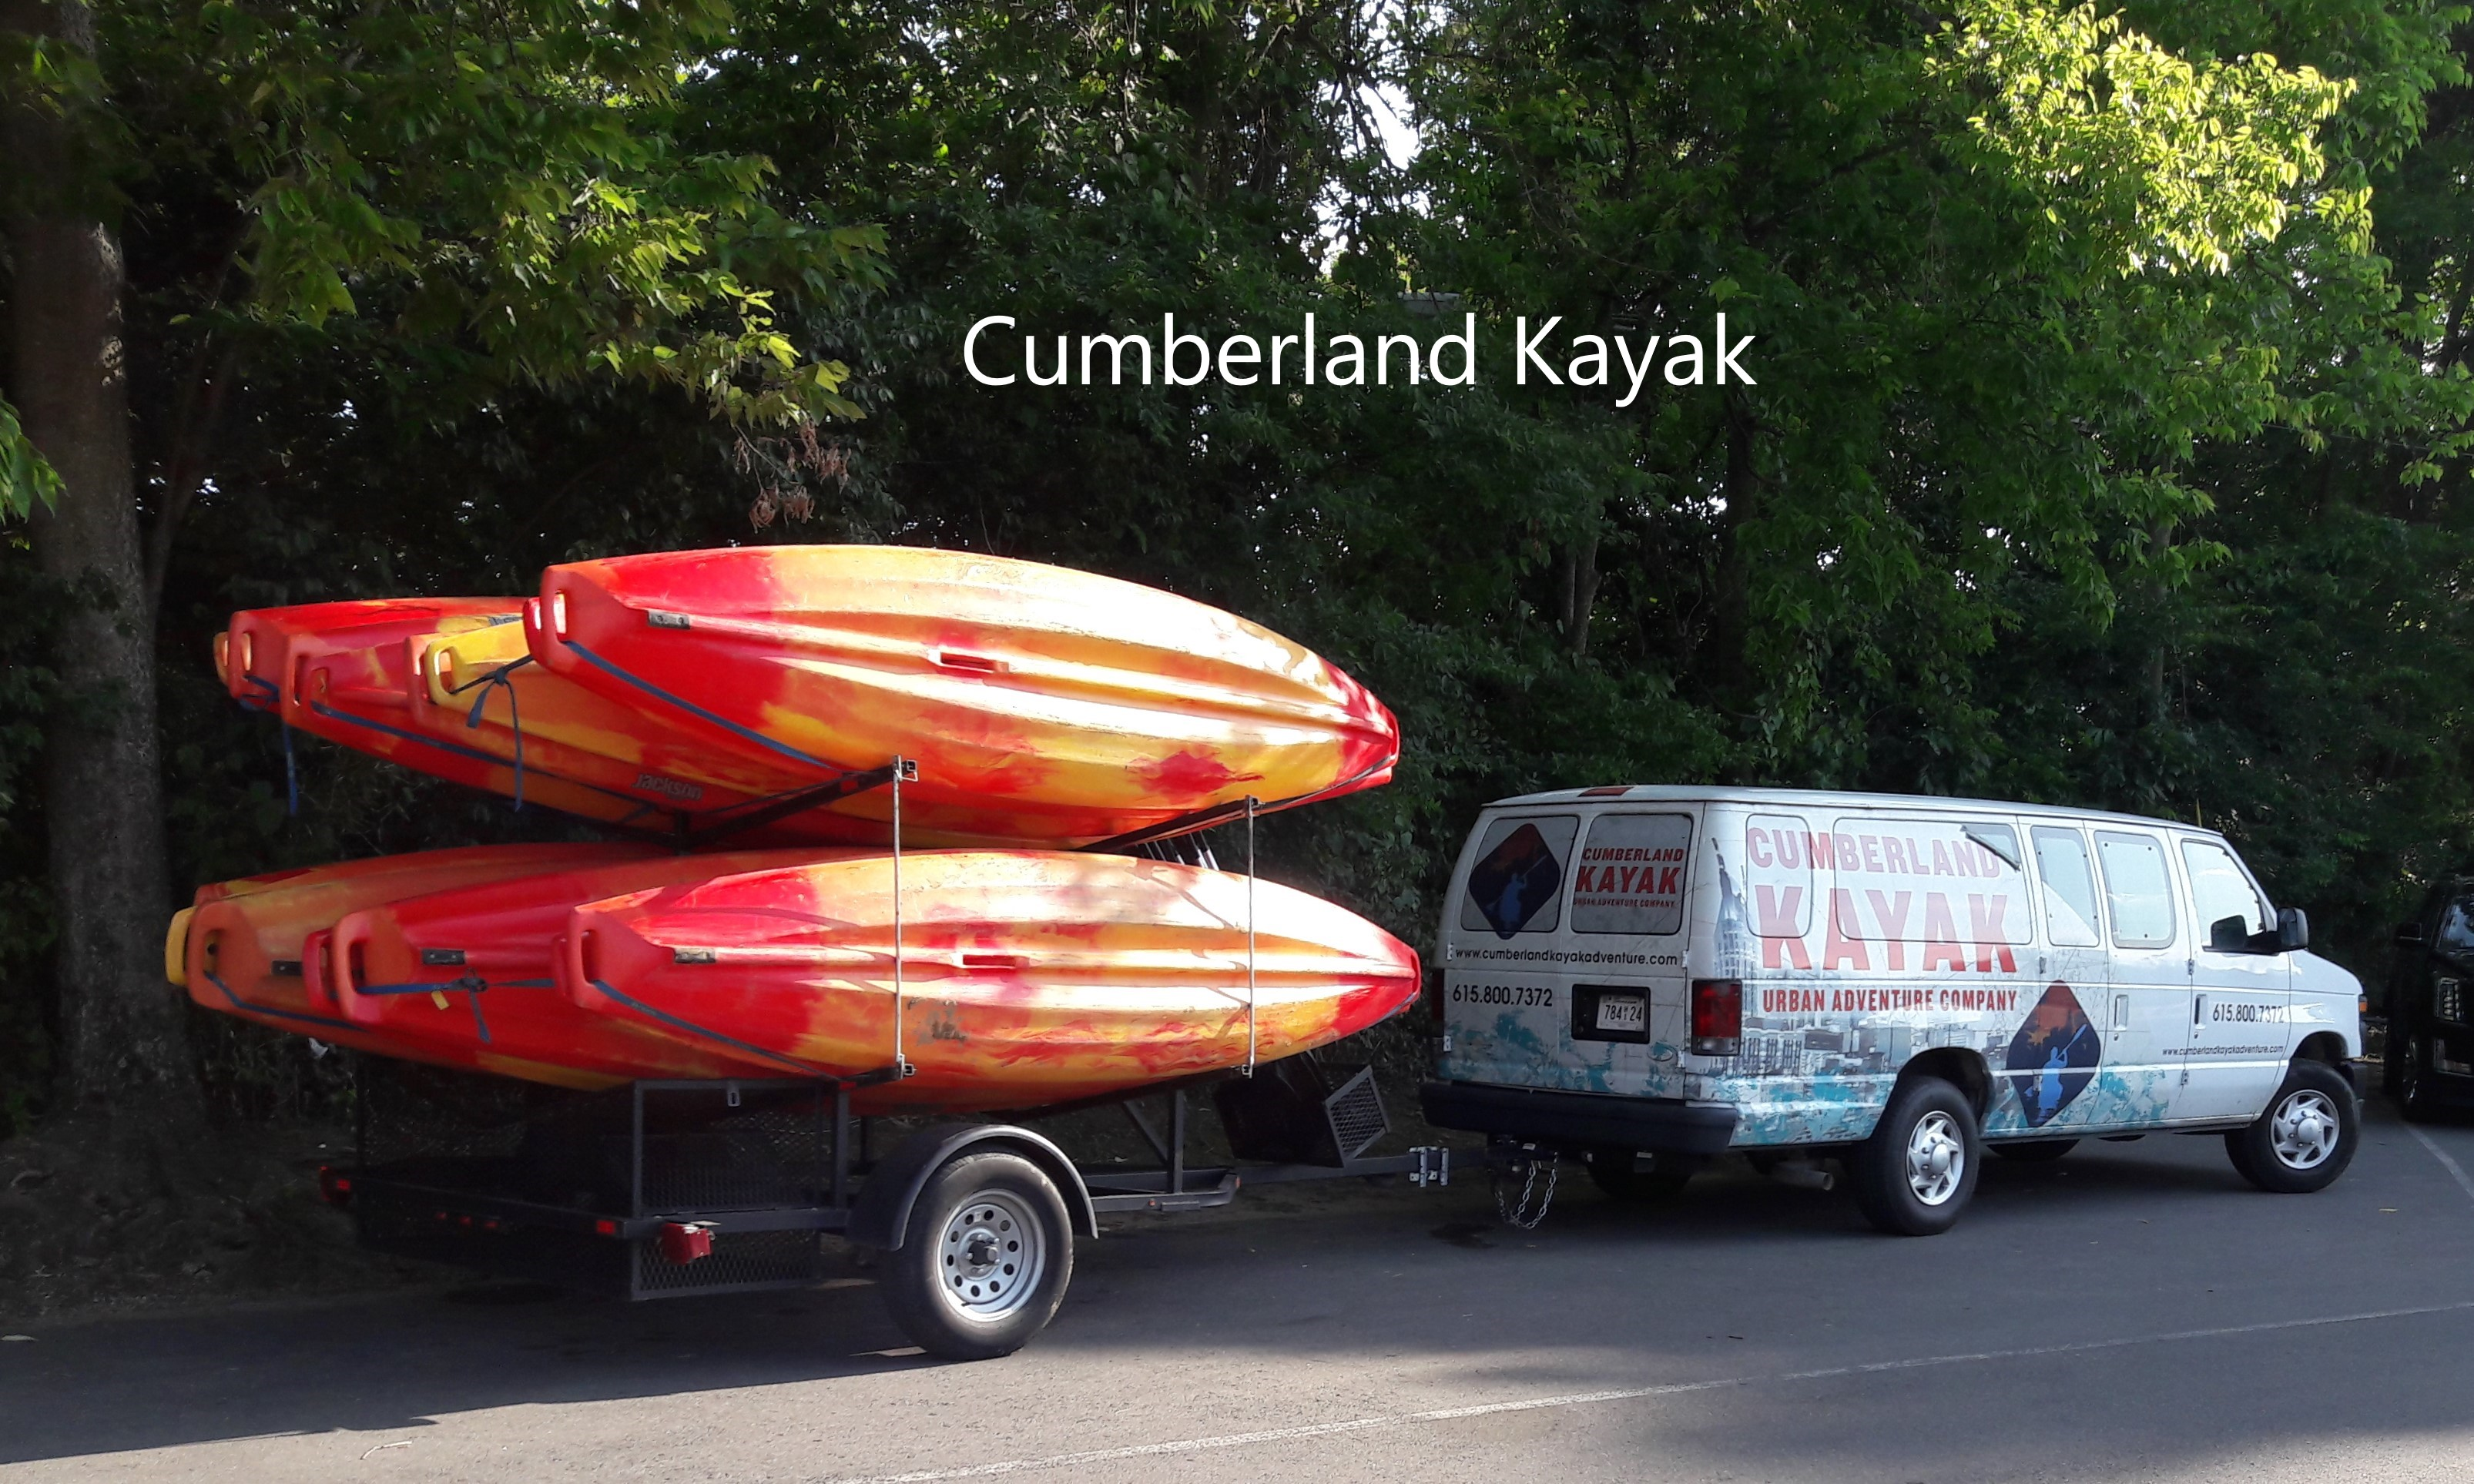 passenger van and kayaks parked in the shade